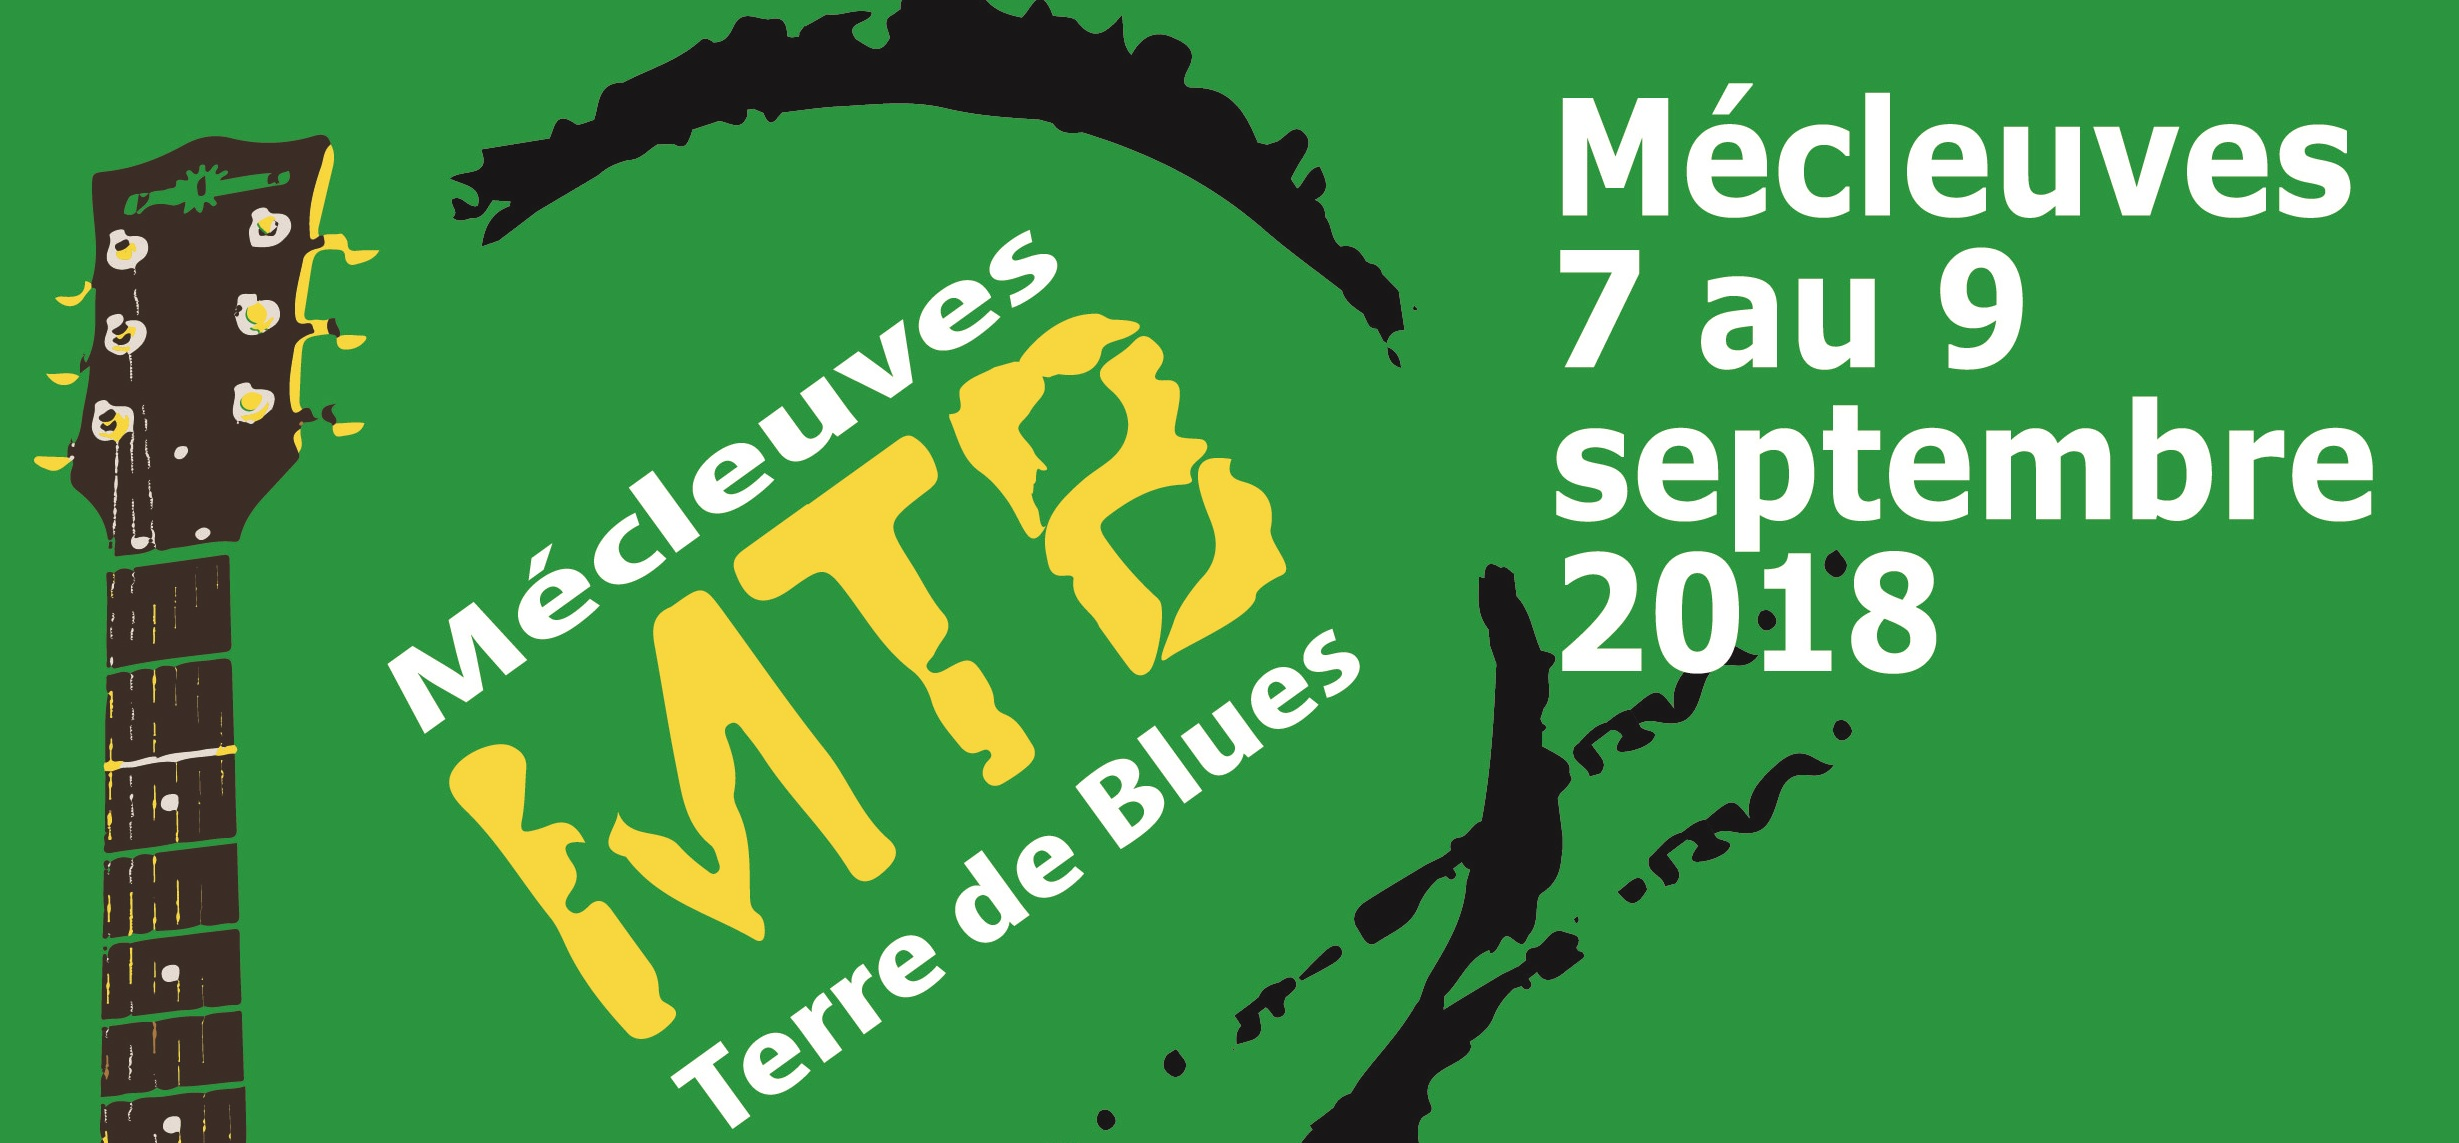 Mecleuves, terre de blues